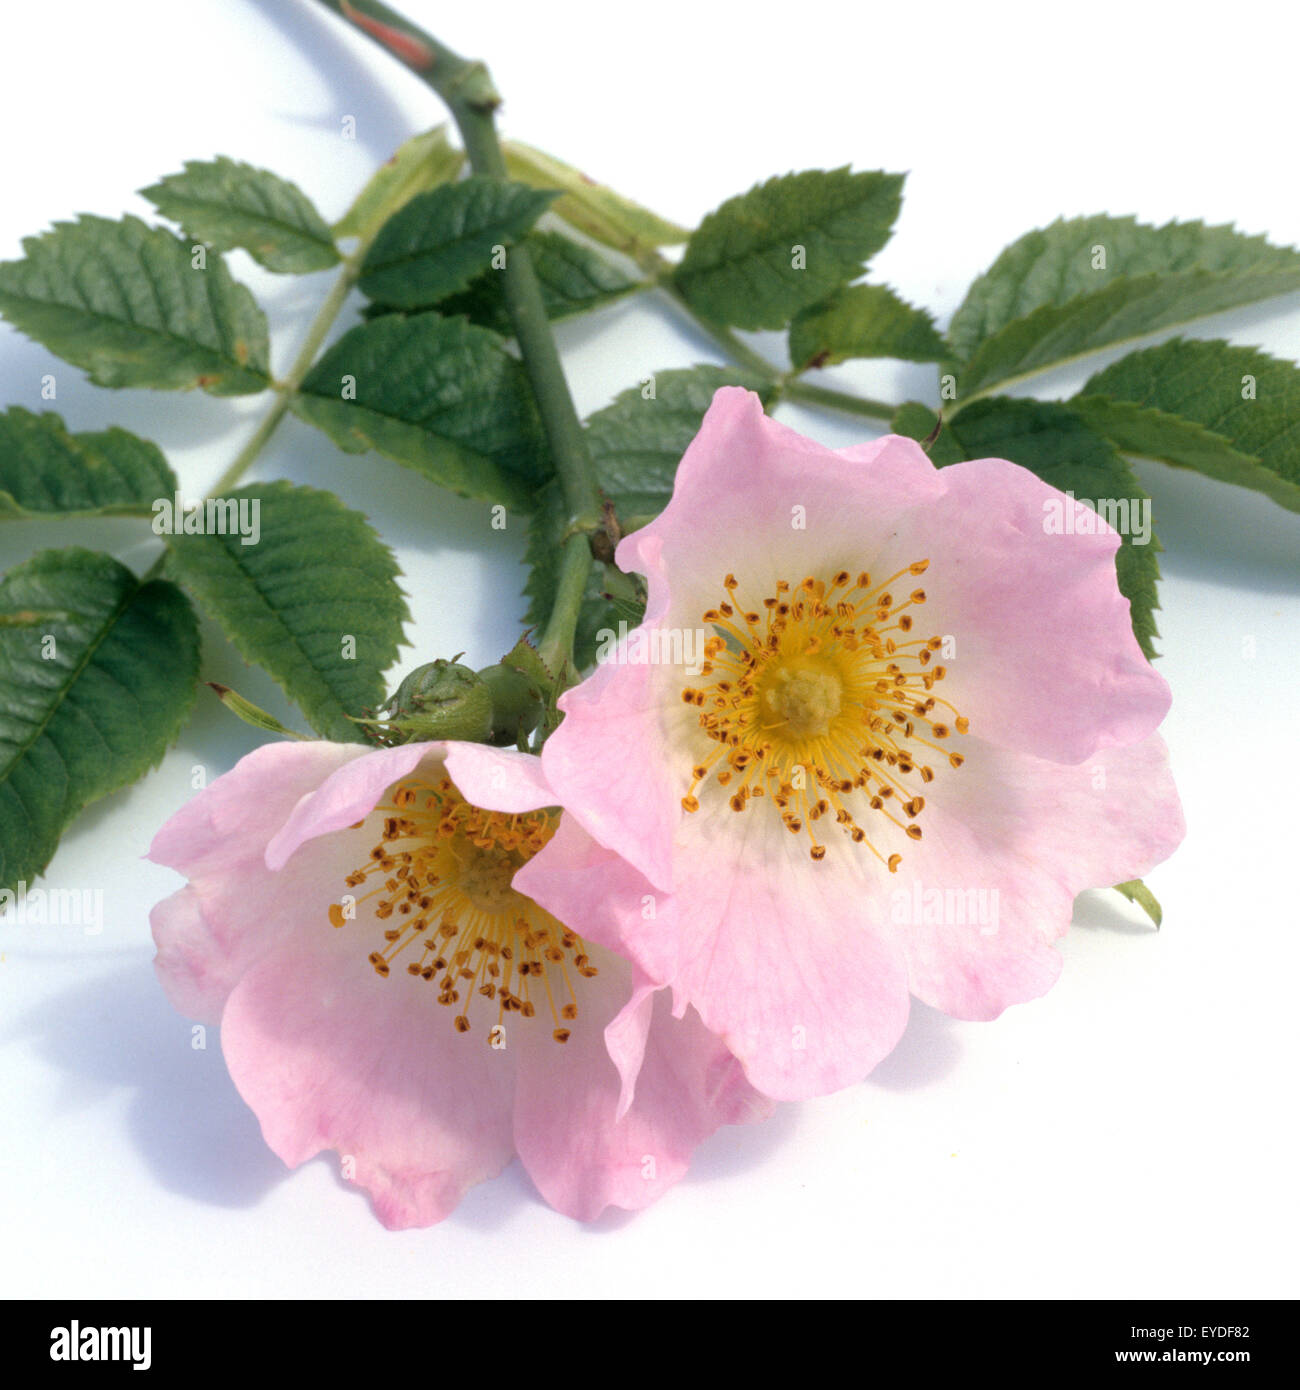 Hundsrose, Heckenrose, Rosa canina, Stock Photo